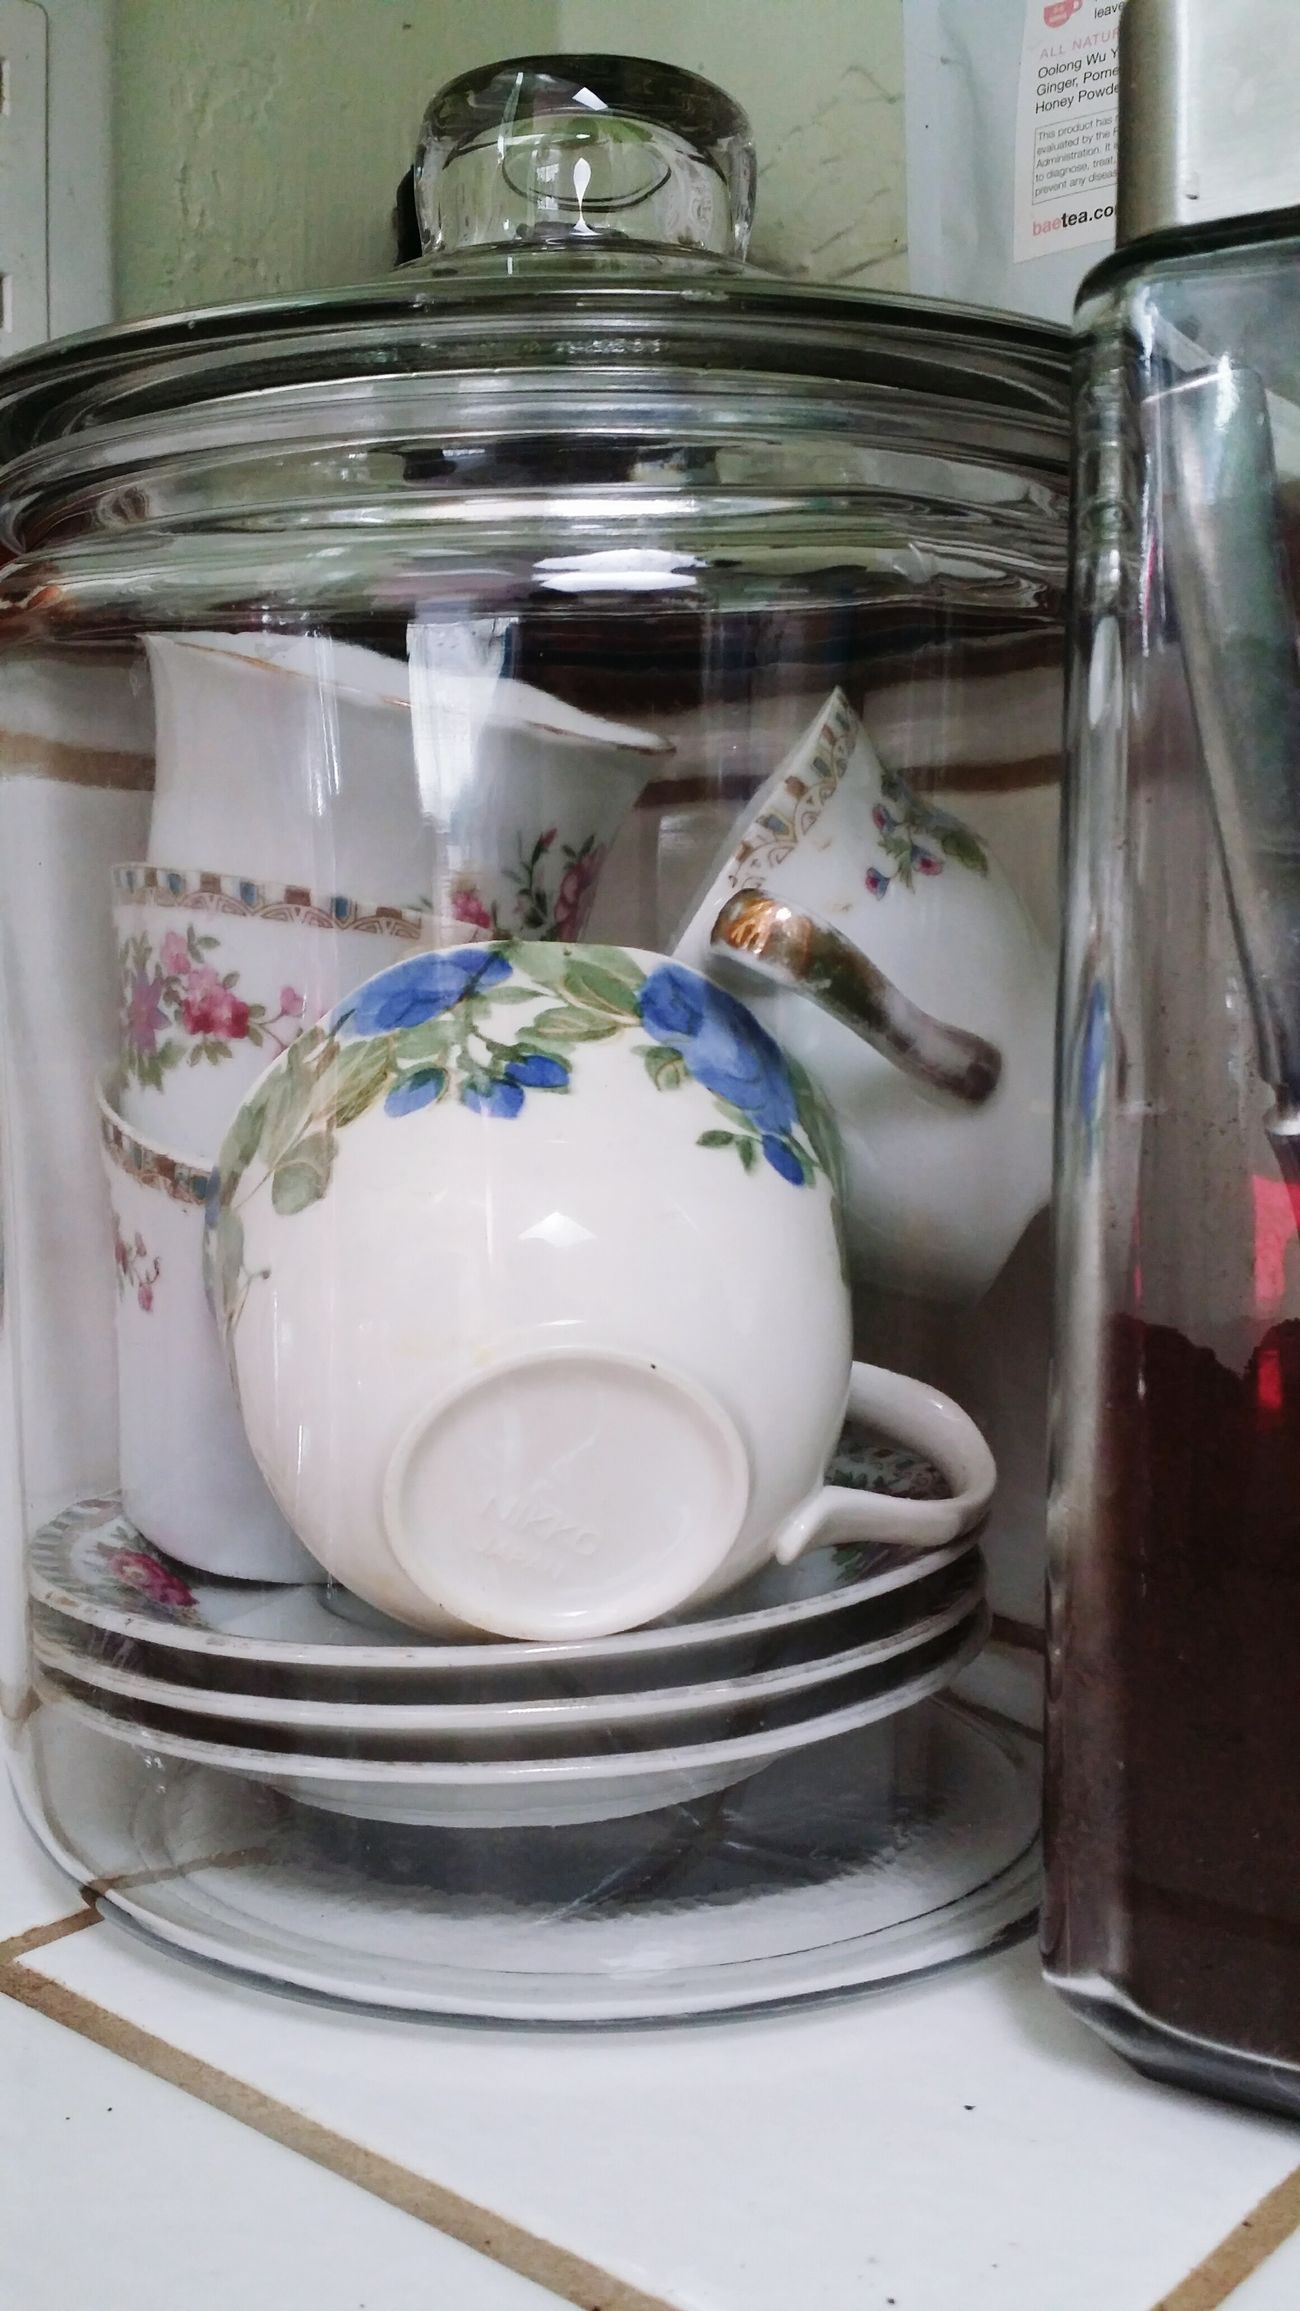 Where i keep Teacups Kitchen Things MarinCounty, Bay Area Feb2017 FairfaxCalifornia Jars